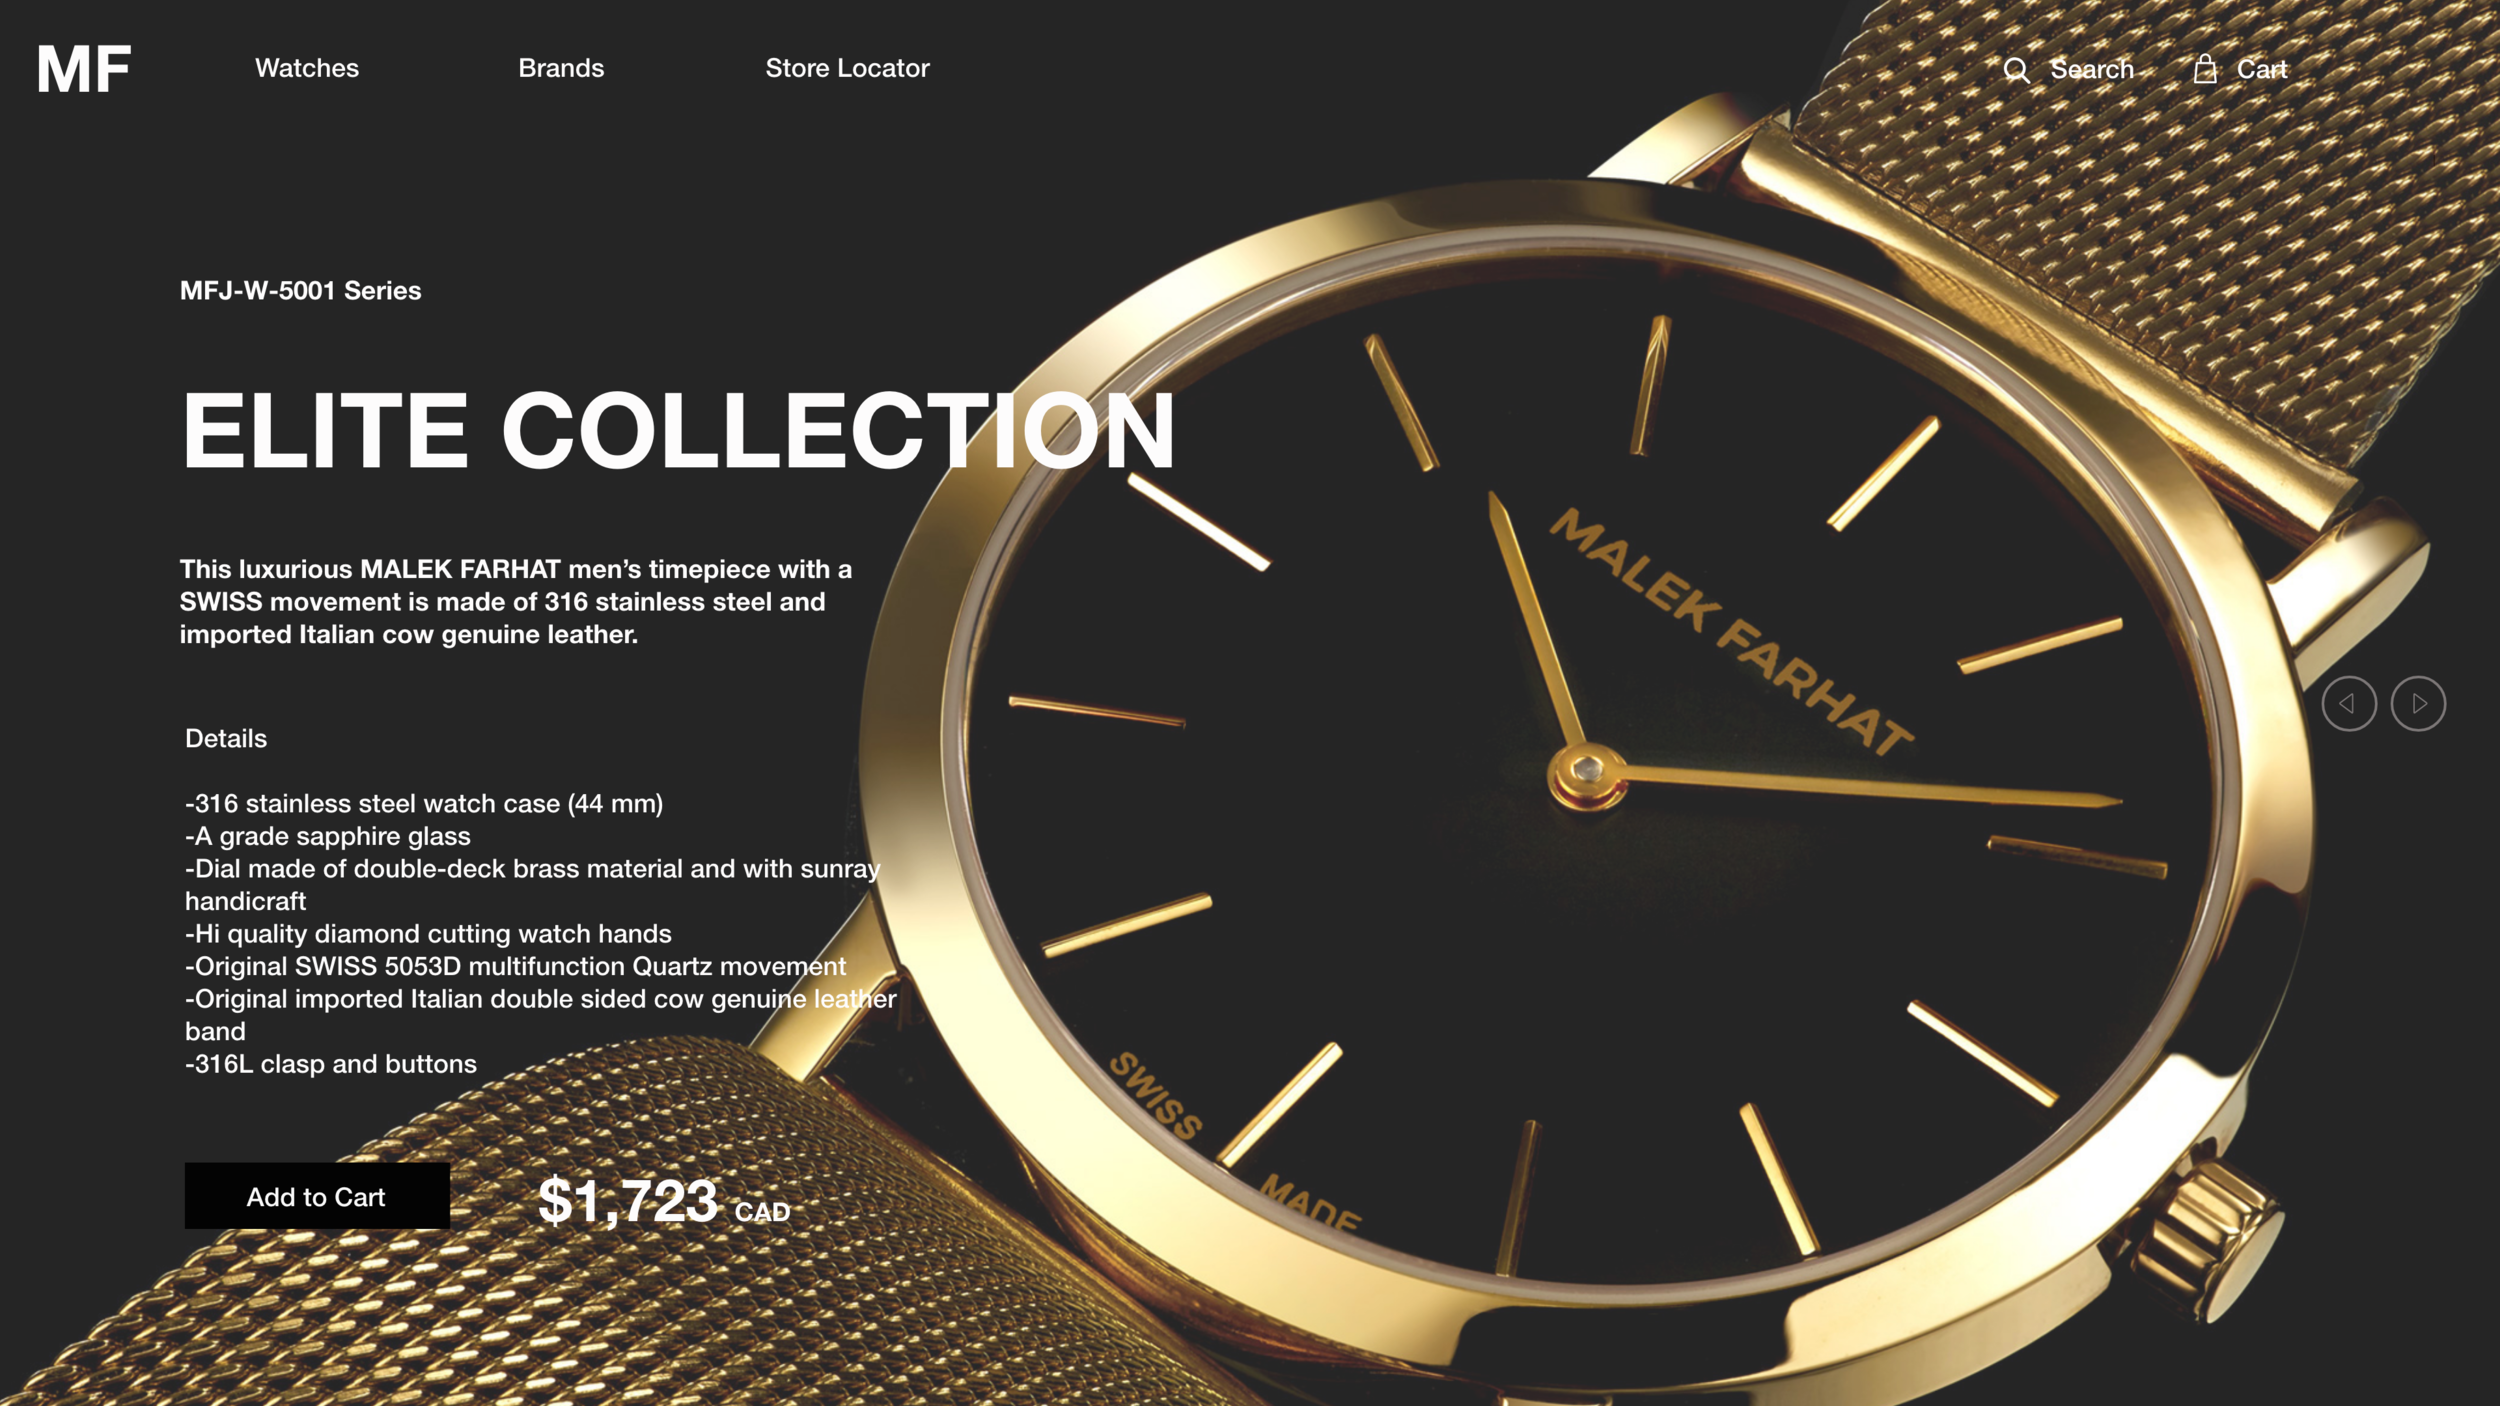 Product Webpage Design for Luxury Watch 2